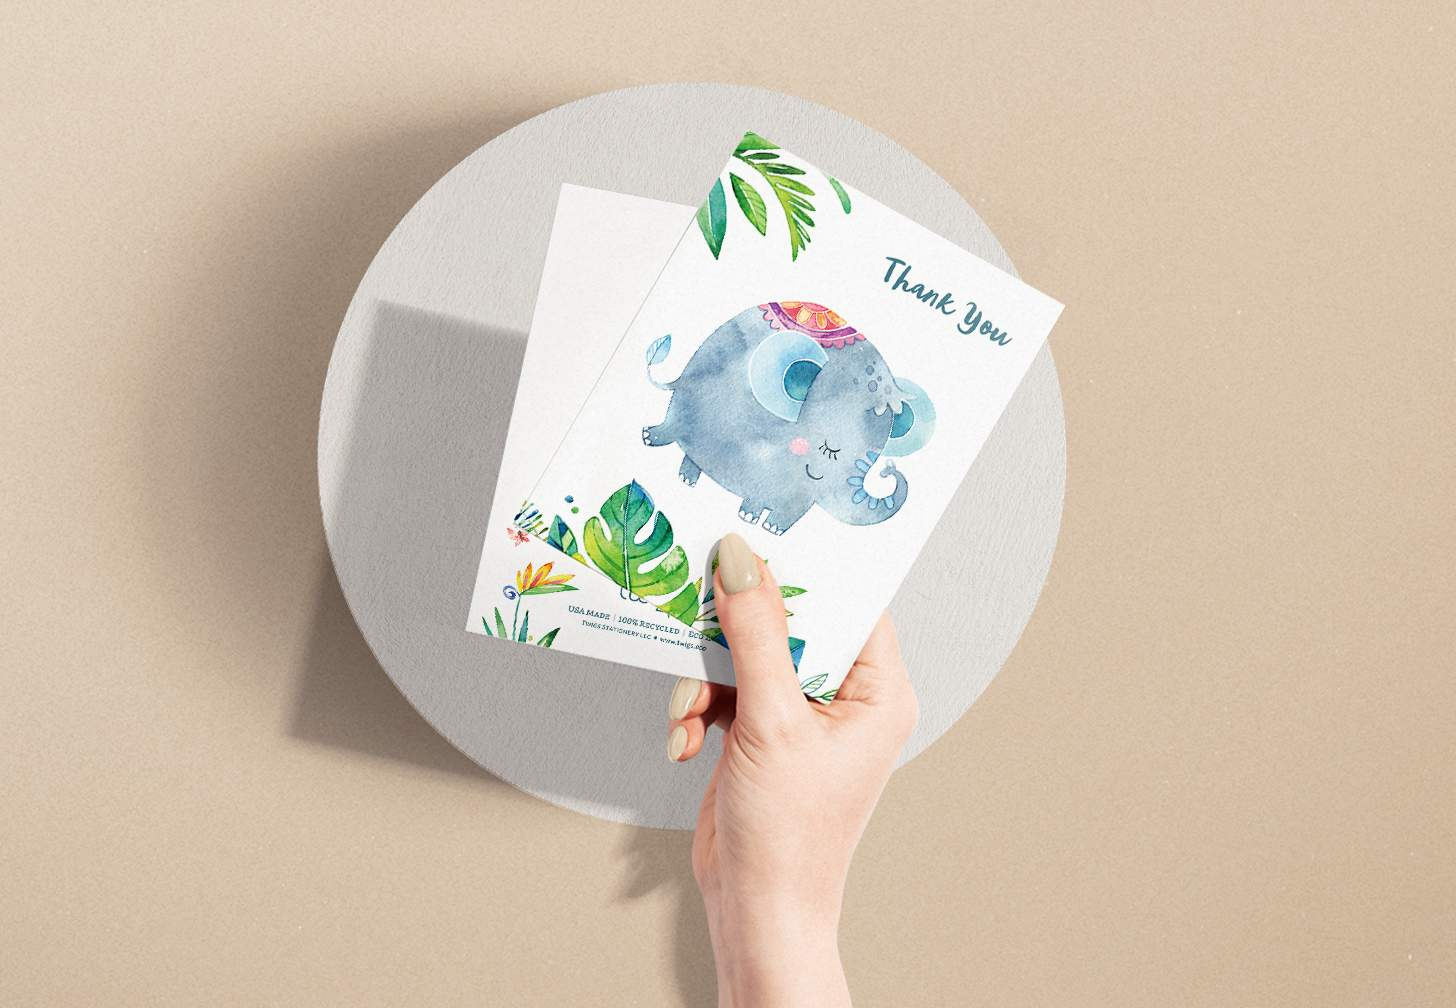 Woman's hand holding card with a cute blue elephant and green leaves design with a white envelope